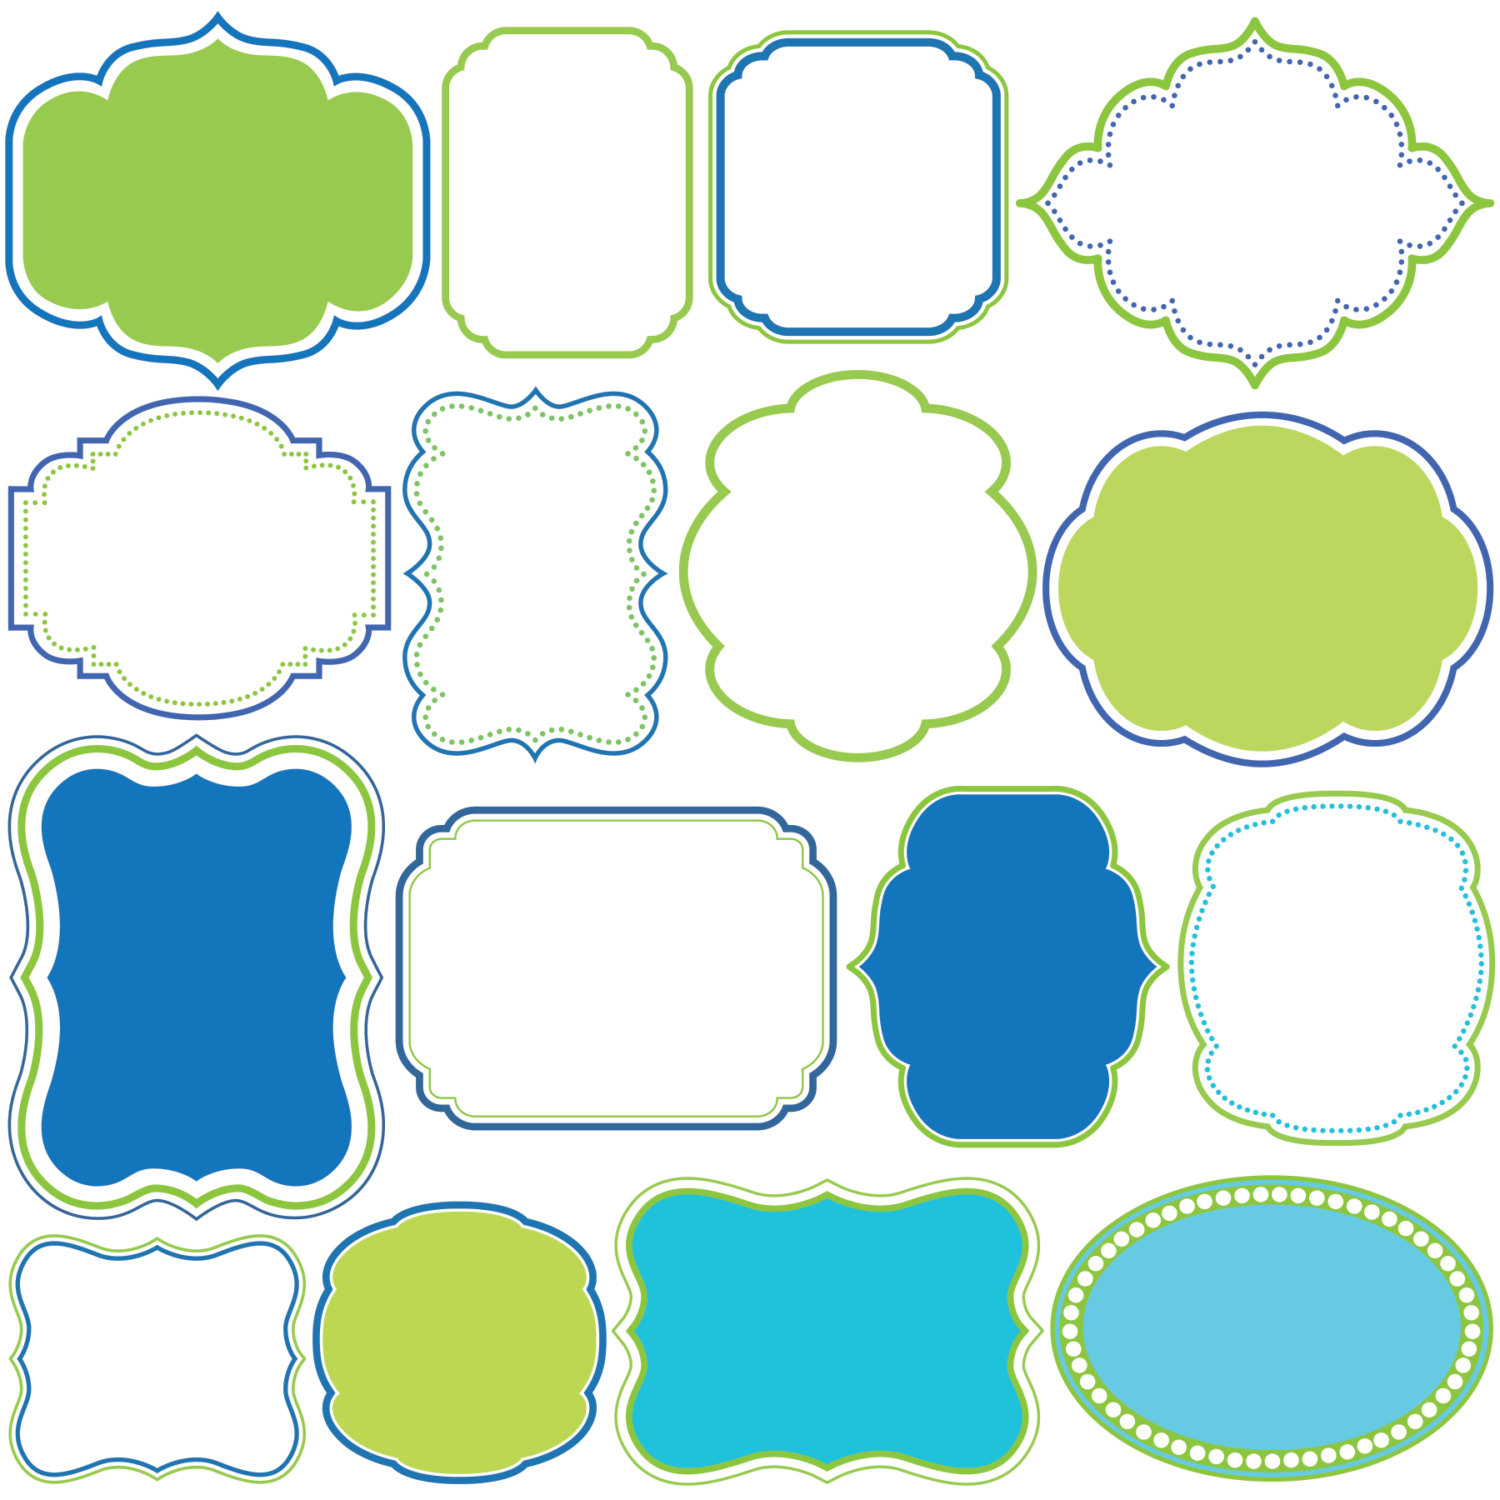 Solid blue clipart border.